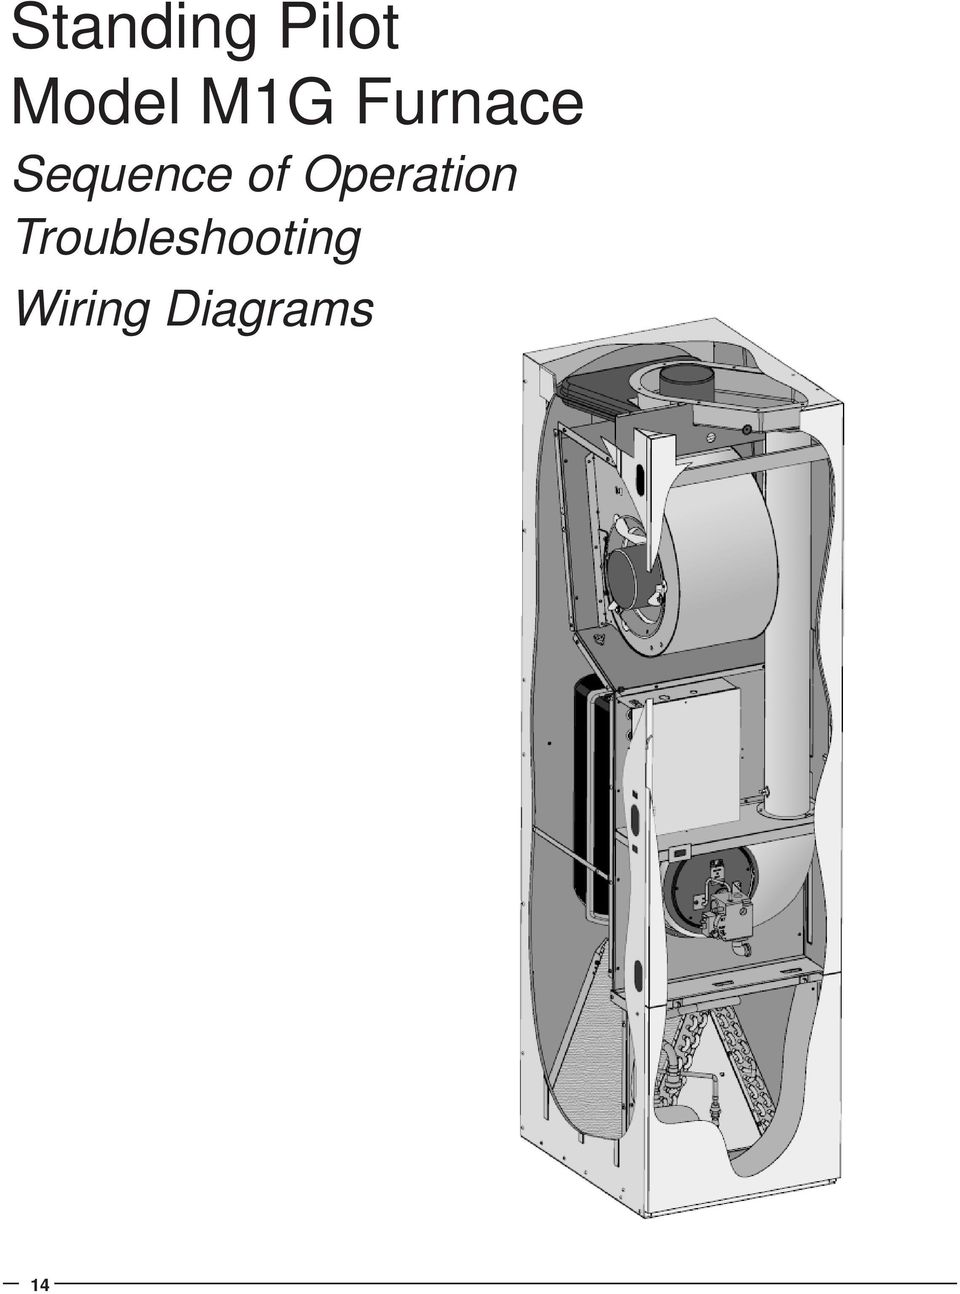 M1 Series M1g And M1m Furnaces Service Manual Pdf Pilot Assembly For Furnace Wiring Of Operation